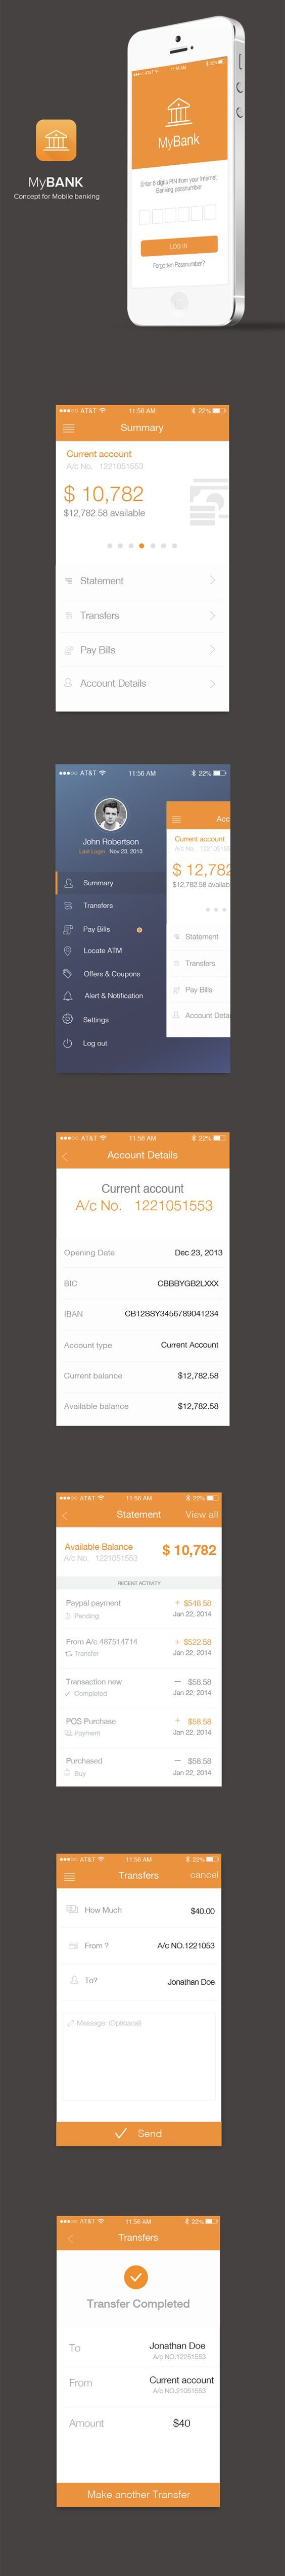 Bank App by sumit chakraborty, via Behance: